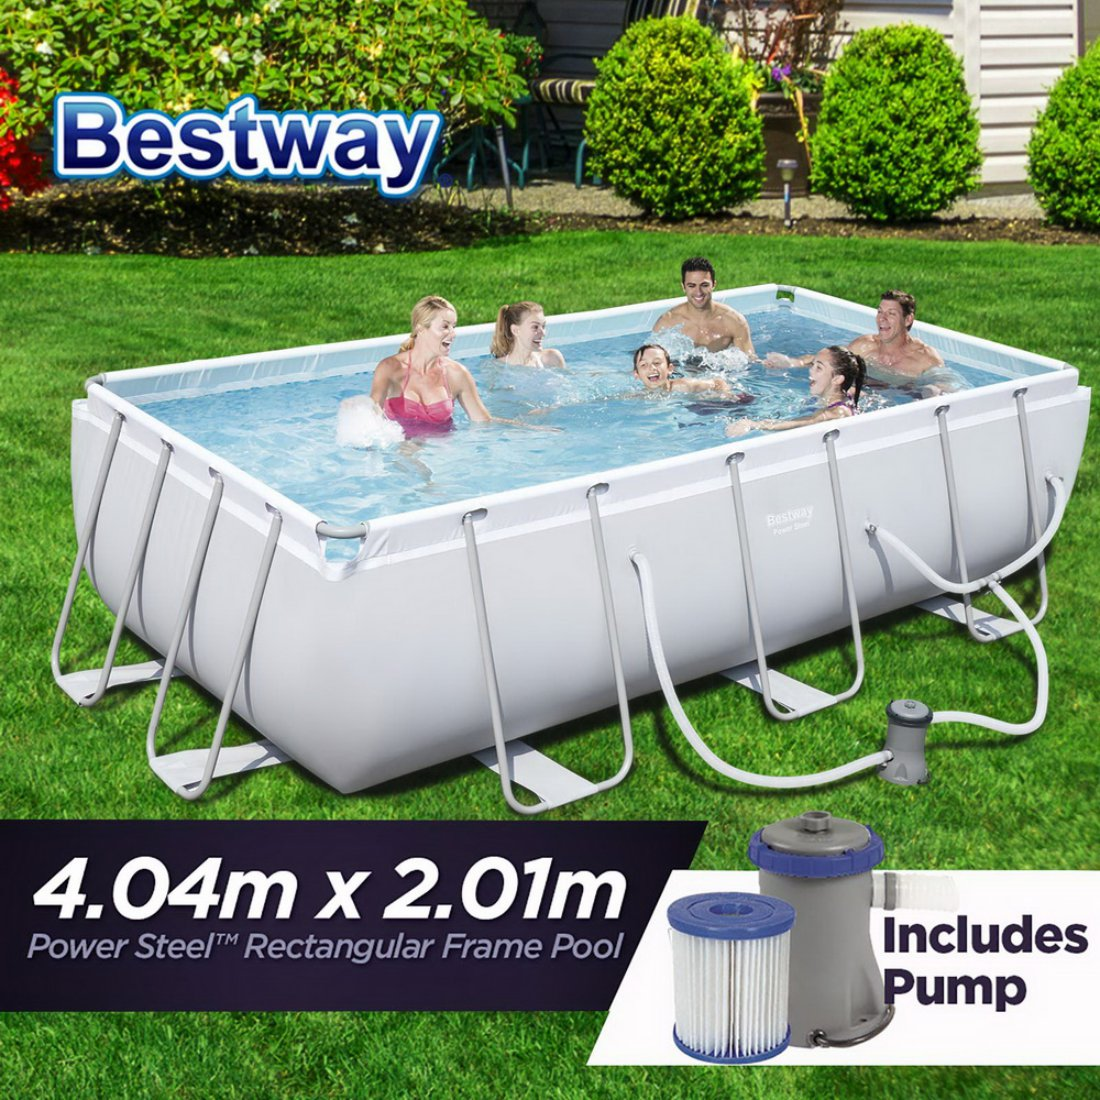 NEW 4.04m x 2.01m Bestway Power Steel™ Rectangular Frame Swimming Pool Set